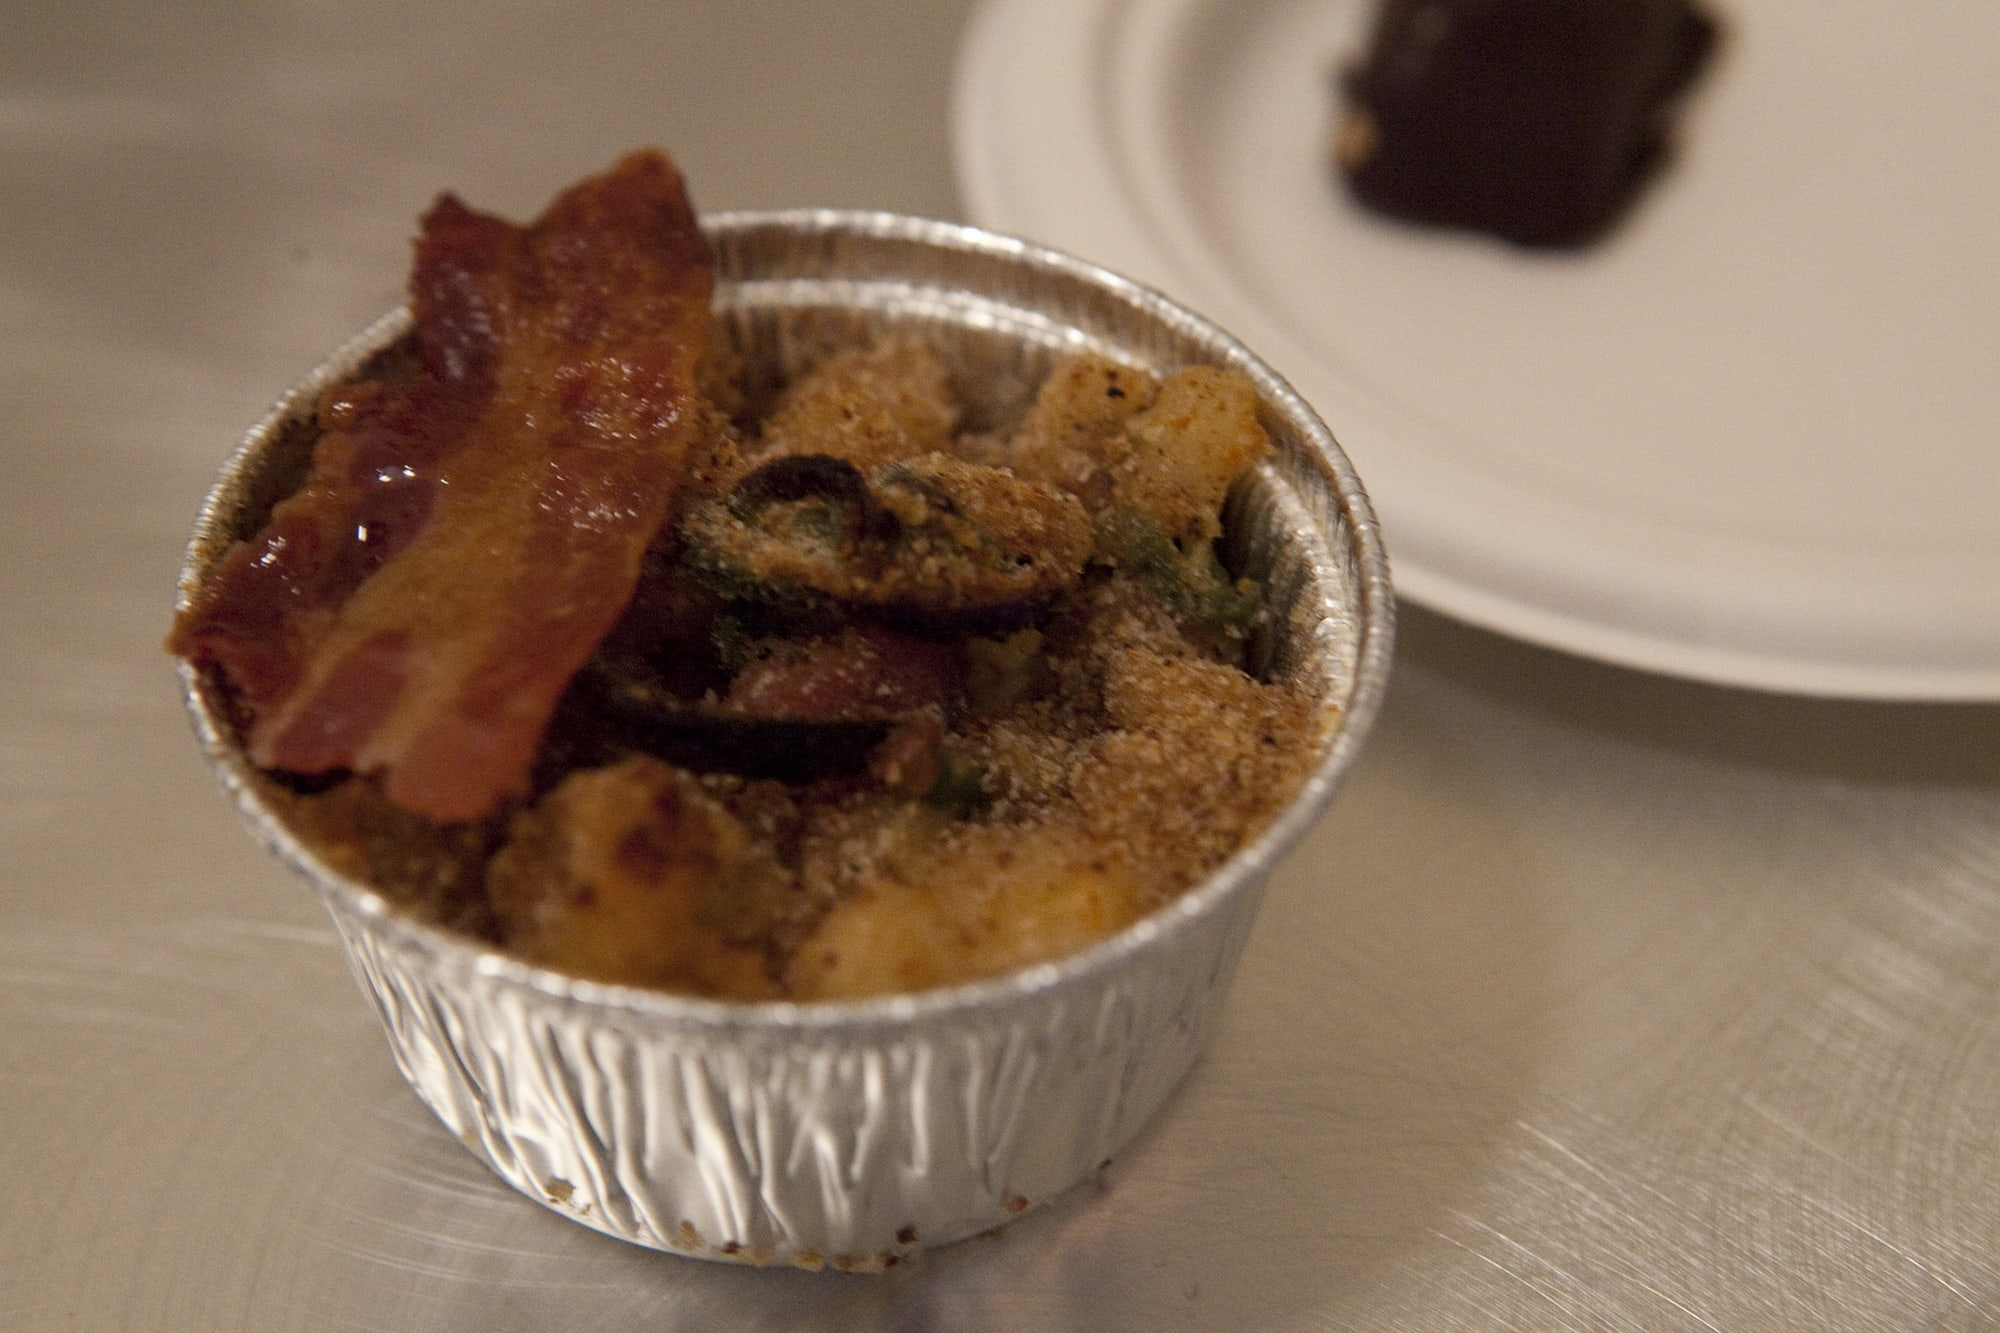 Hominy with bacon, pork belly, jalapeno, and cheddar from Lula Cafe at Baconfest Chicago - a bacon festival